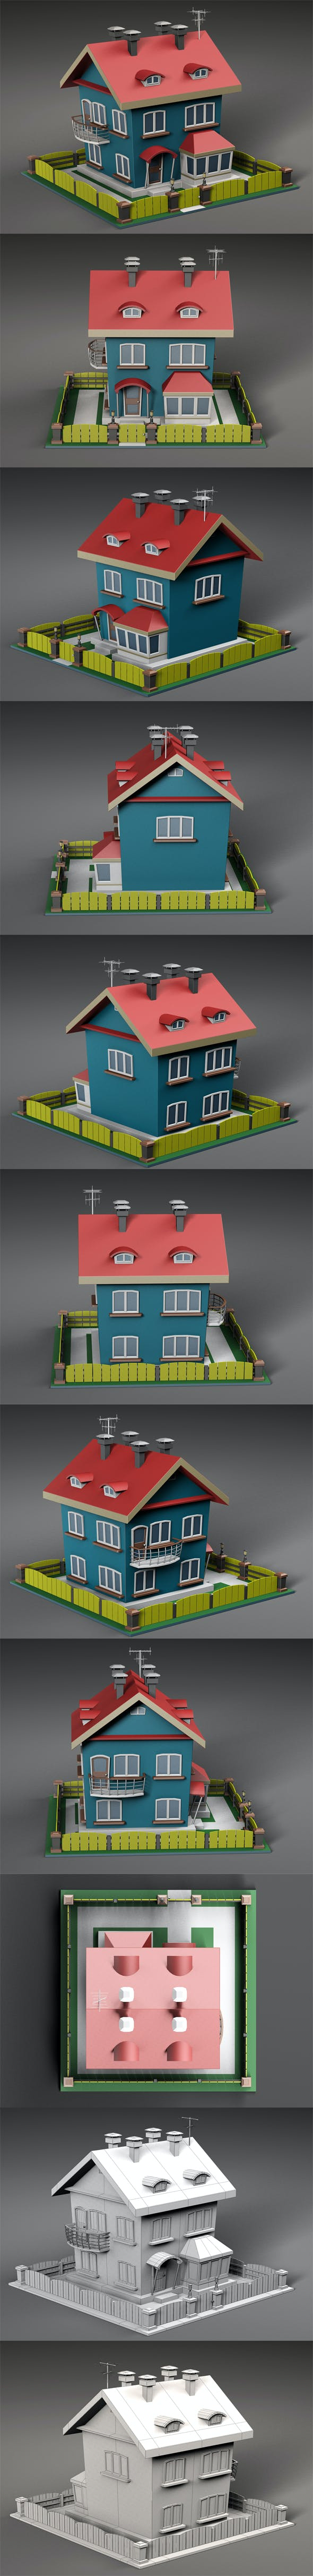 Cartoon house v2 - 3DOcean Item for Sale